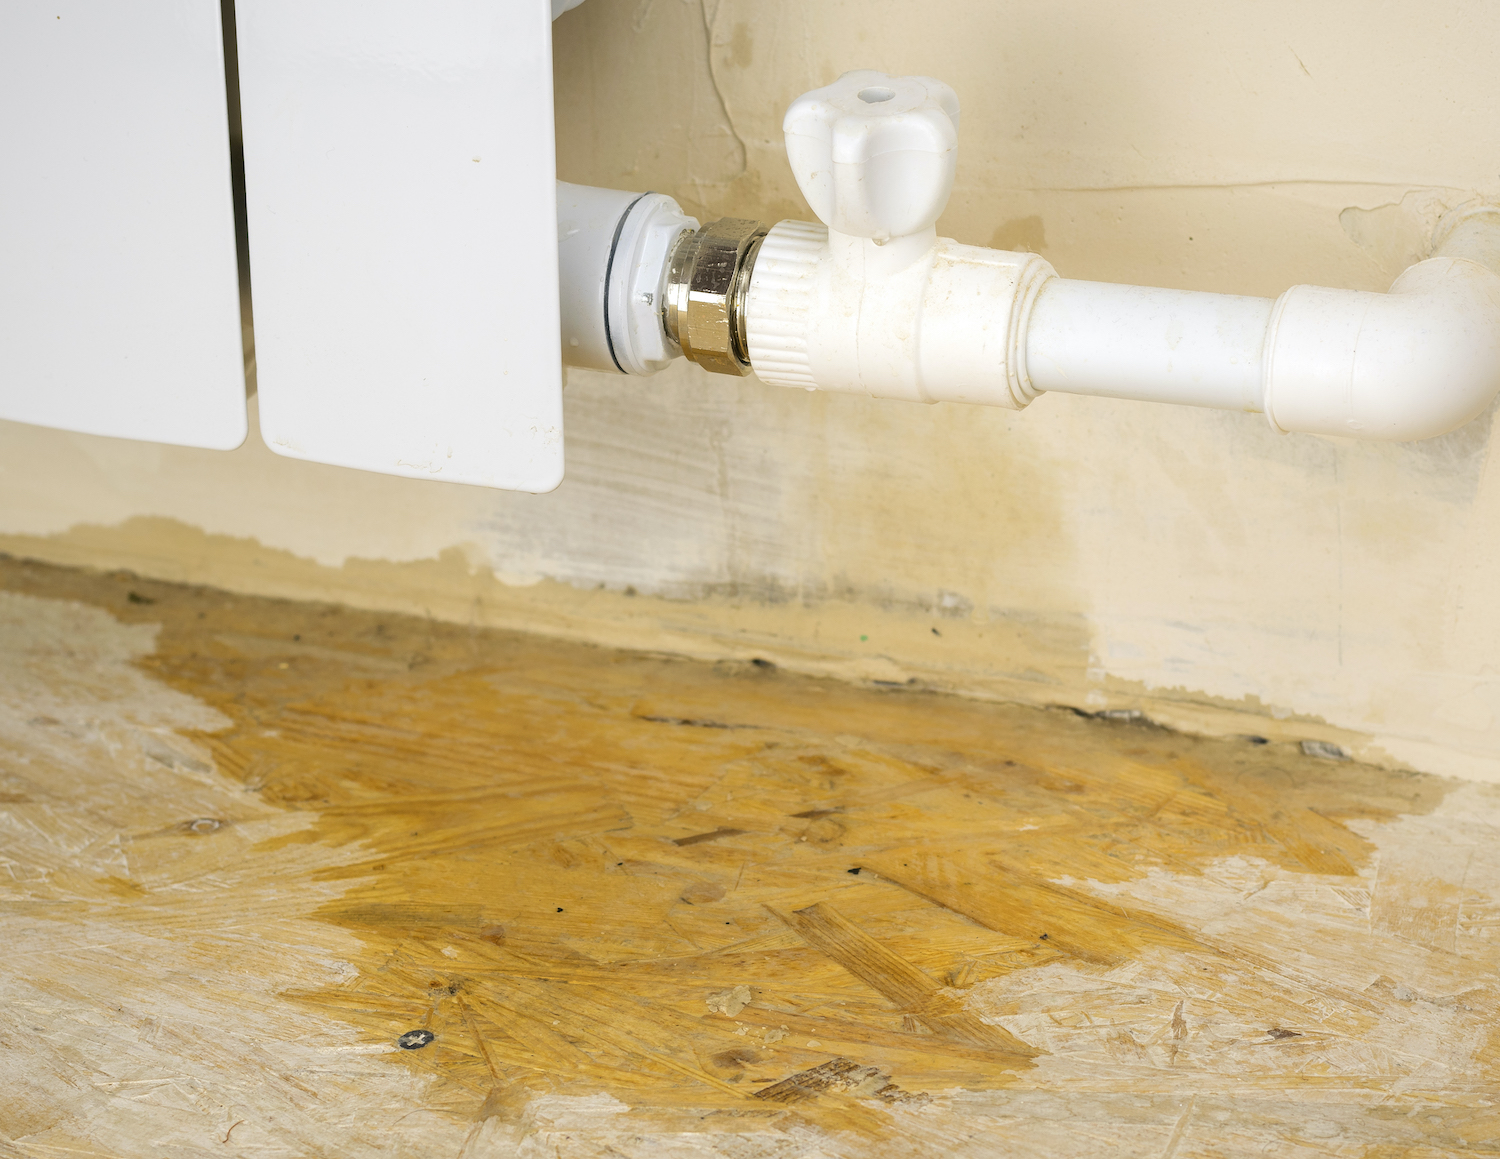 Damage to the heating system in a private home. Water leaks from the heating system.